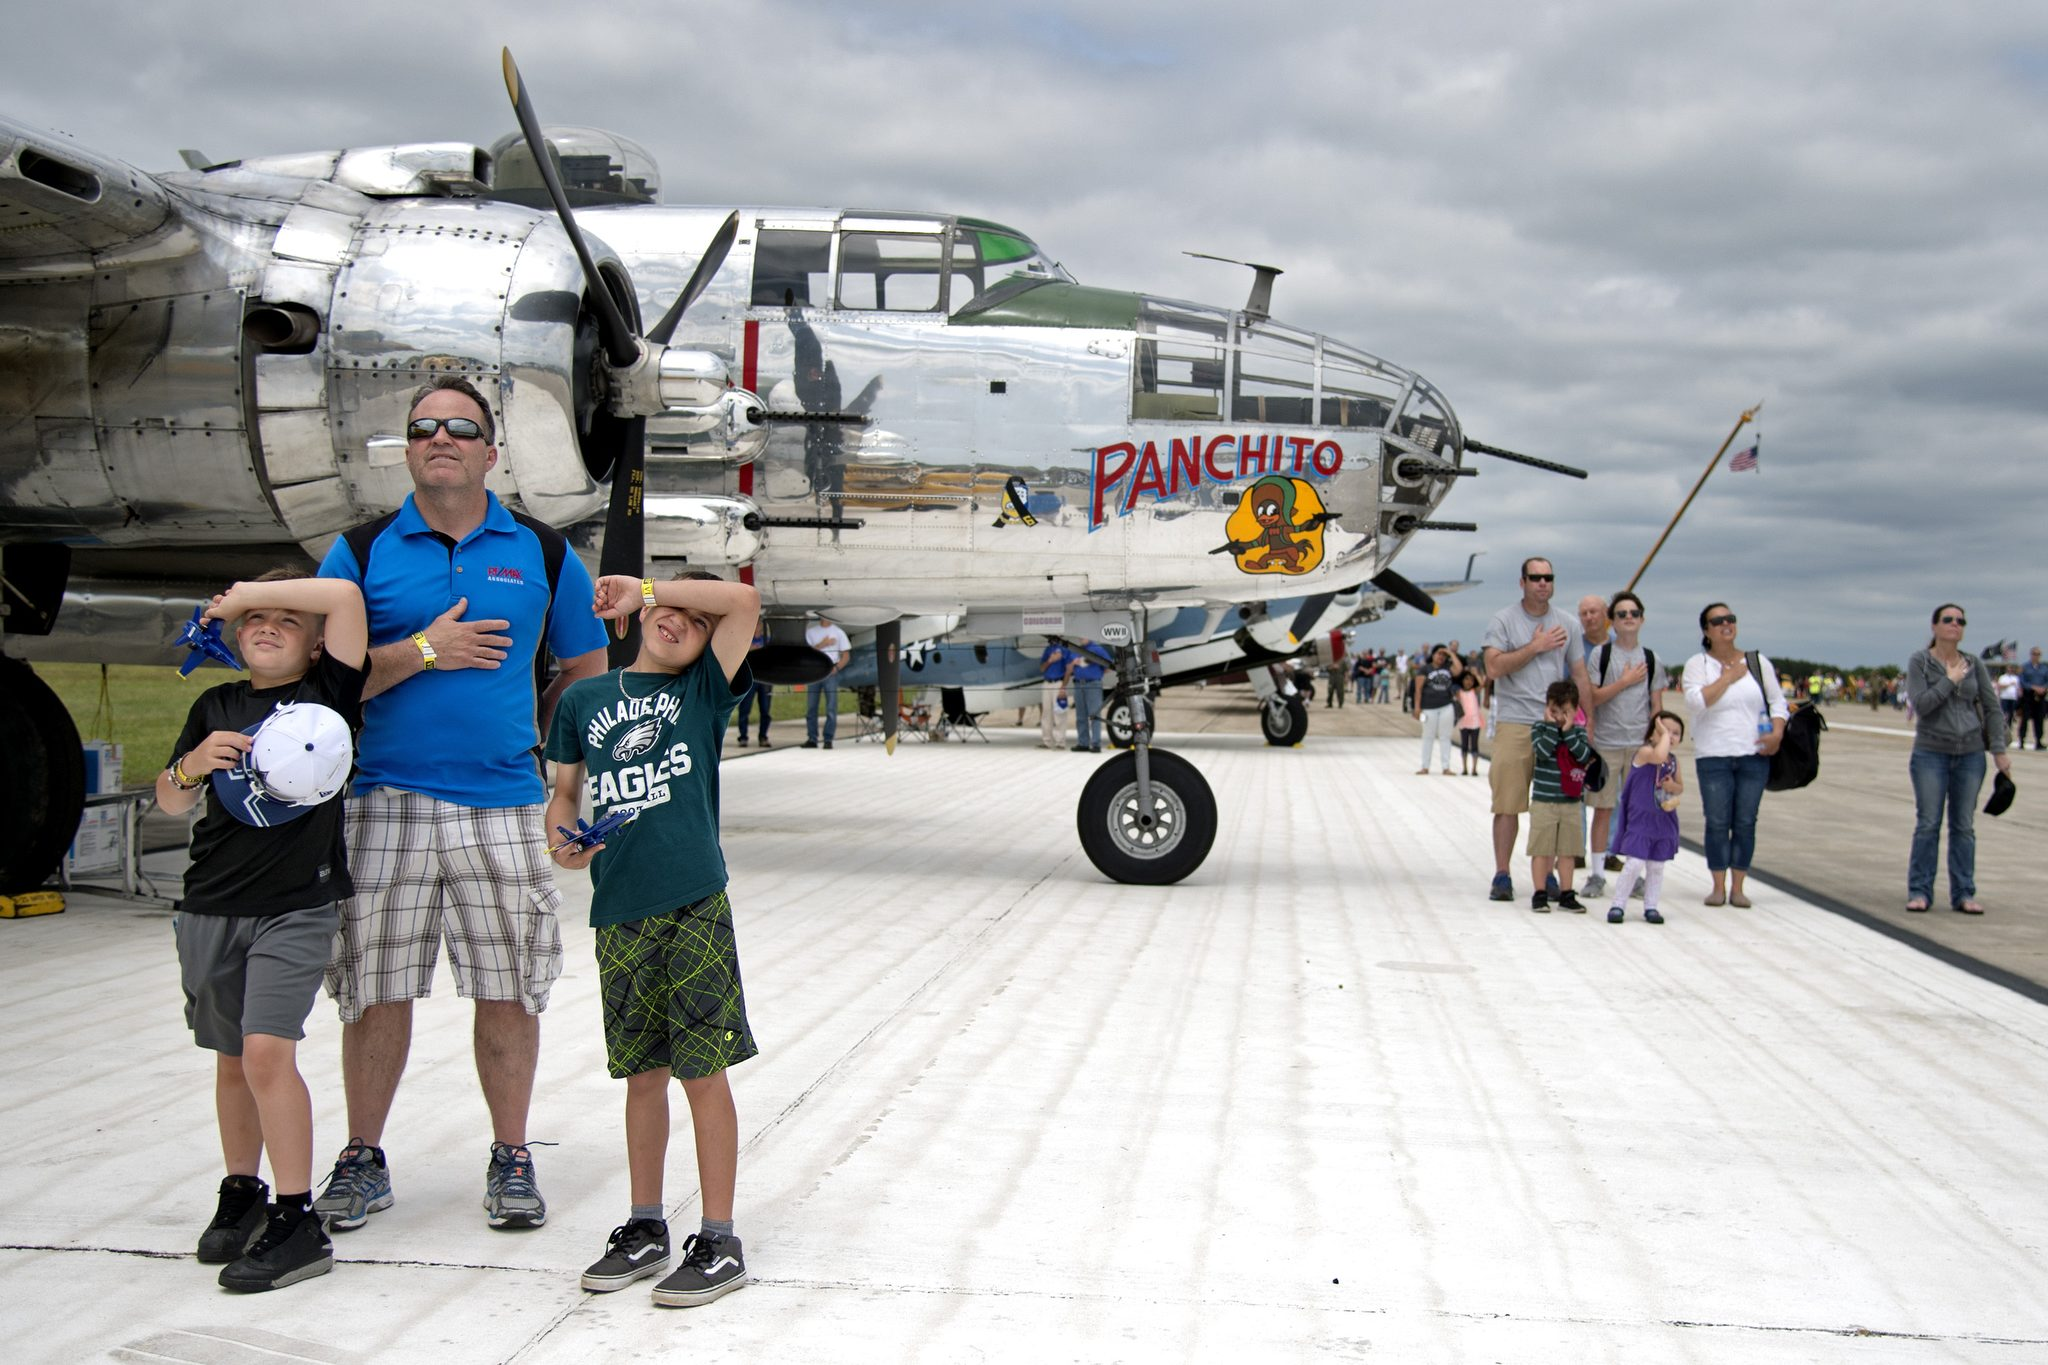 In front of a 1944 B-25J Bomber, John Andrie of Franklinville and his sons Breaden, 7) and Peyton, 8, stand for the National Anthem at start of the Memorial Day Millville Wheels and Wings Air Show May 28, 2017, hosted by and to benefit the Millville Army Air Field Museum.